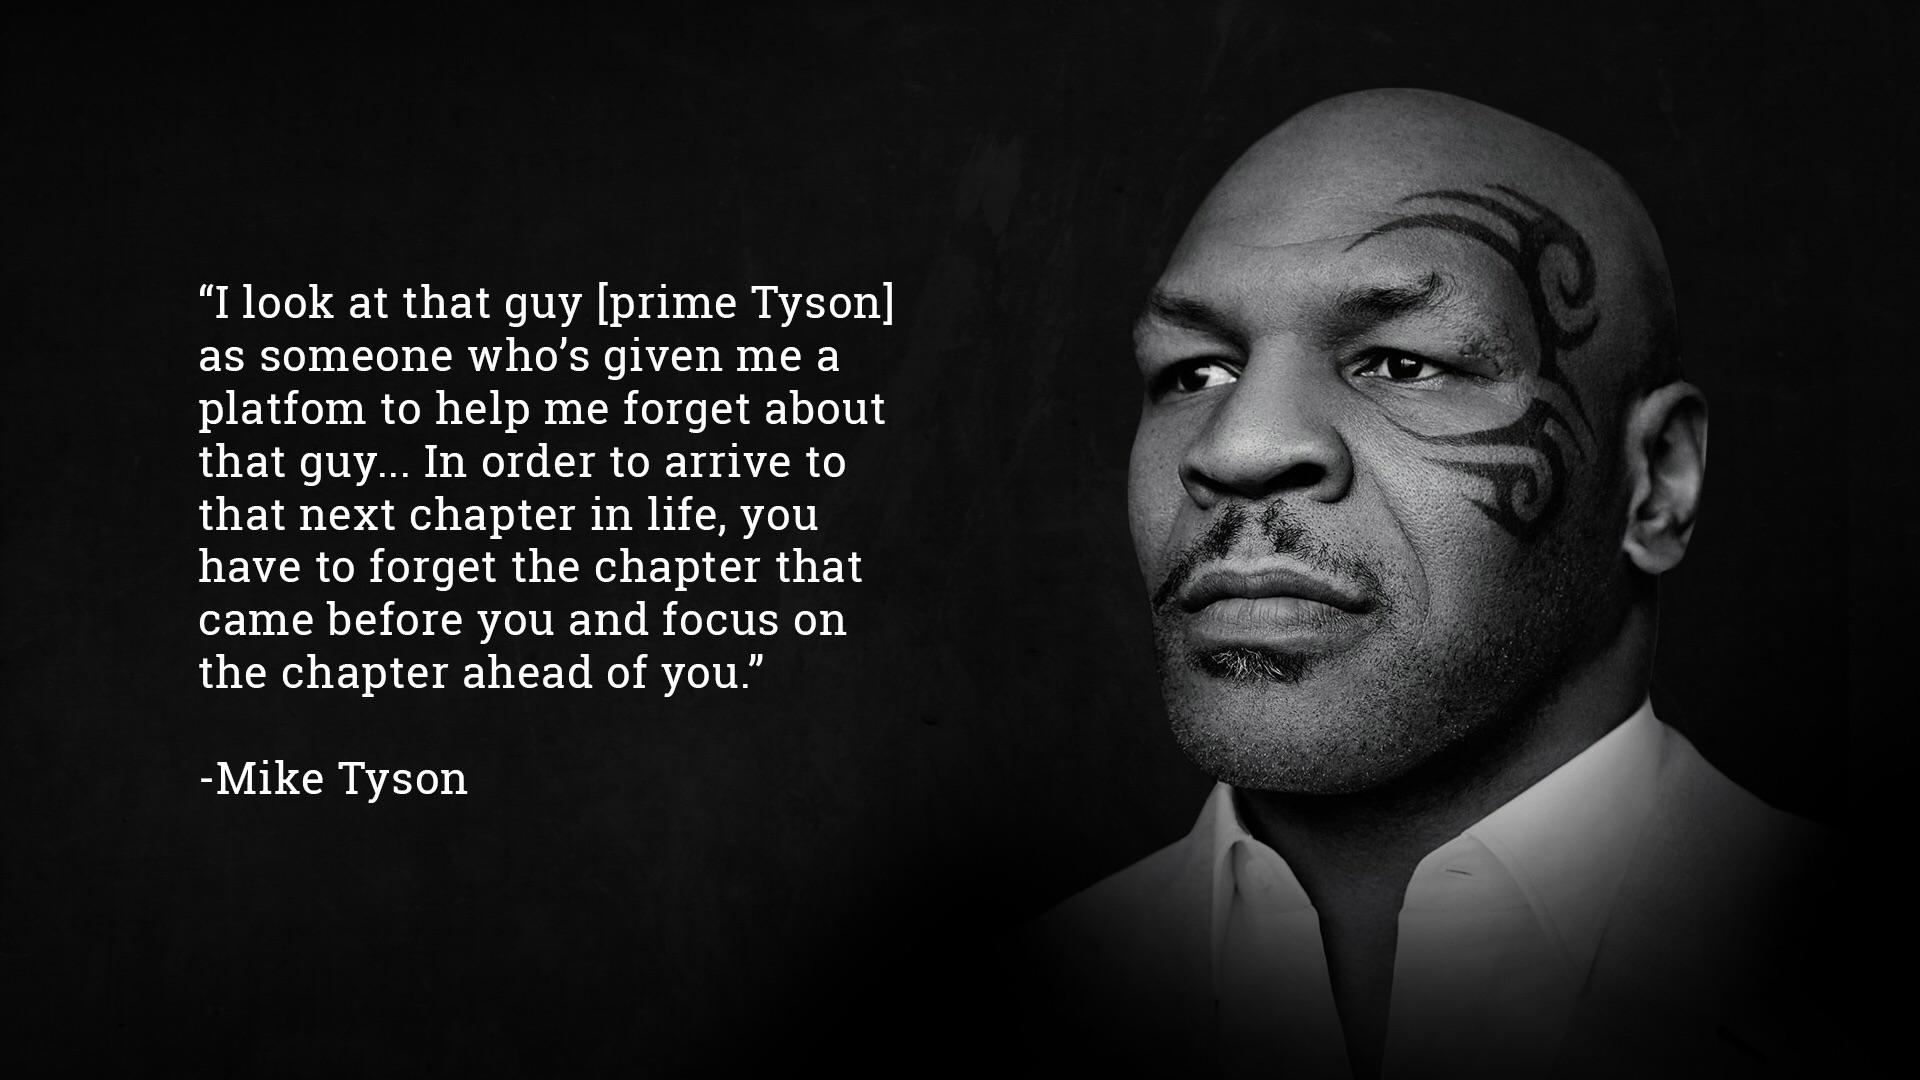 """""""I look at that guy [prime Tyson] as someone who's given me a platform to help me forget about that guy… In order to arrive to that next chapter in life, you have to forget the chapter that came before you and focus on the chapter ahead of you."""" -Mike Tyson (1920×1080)"""